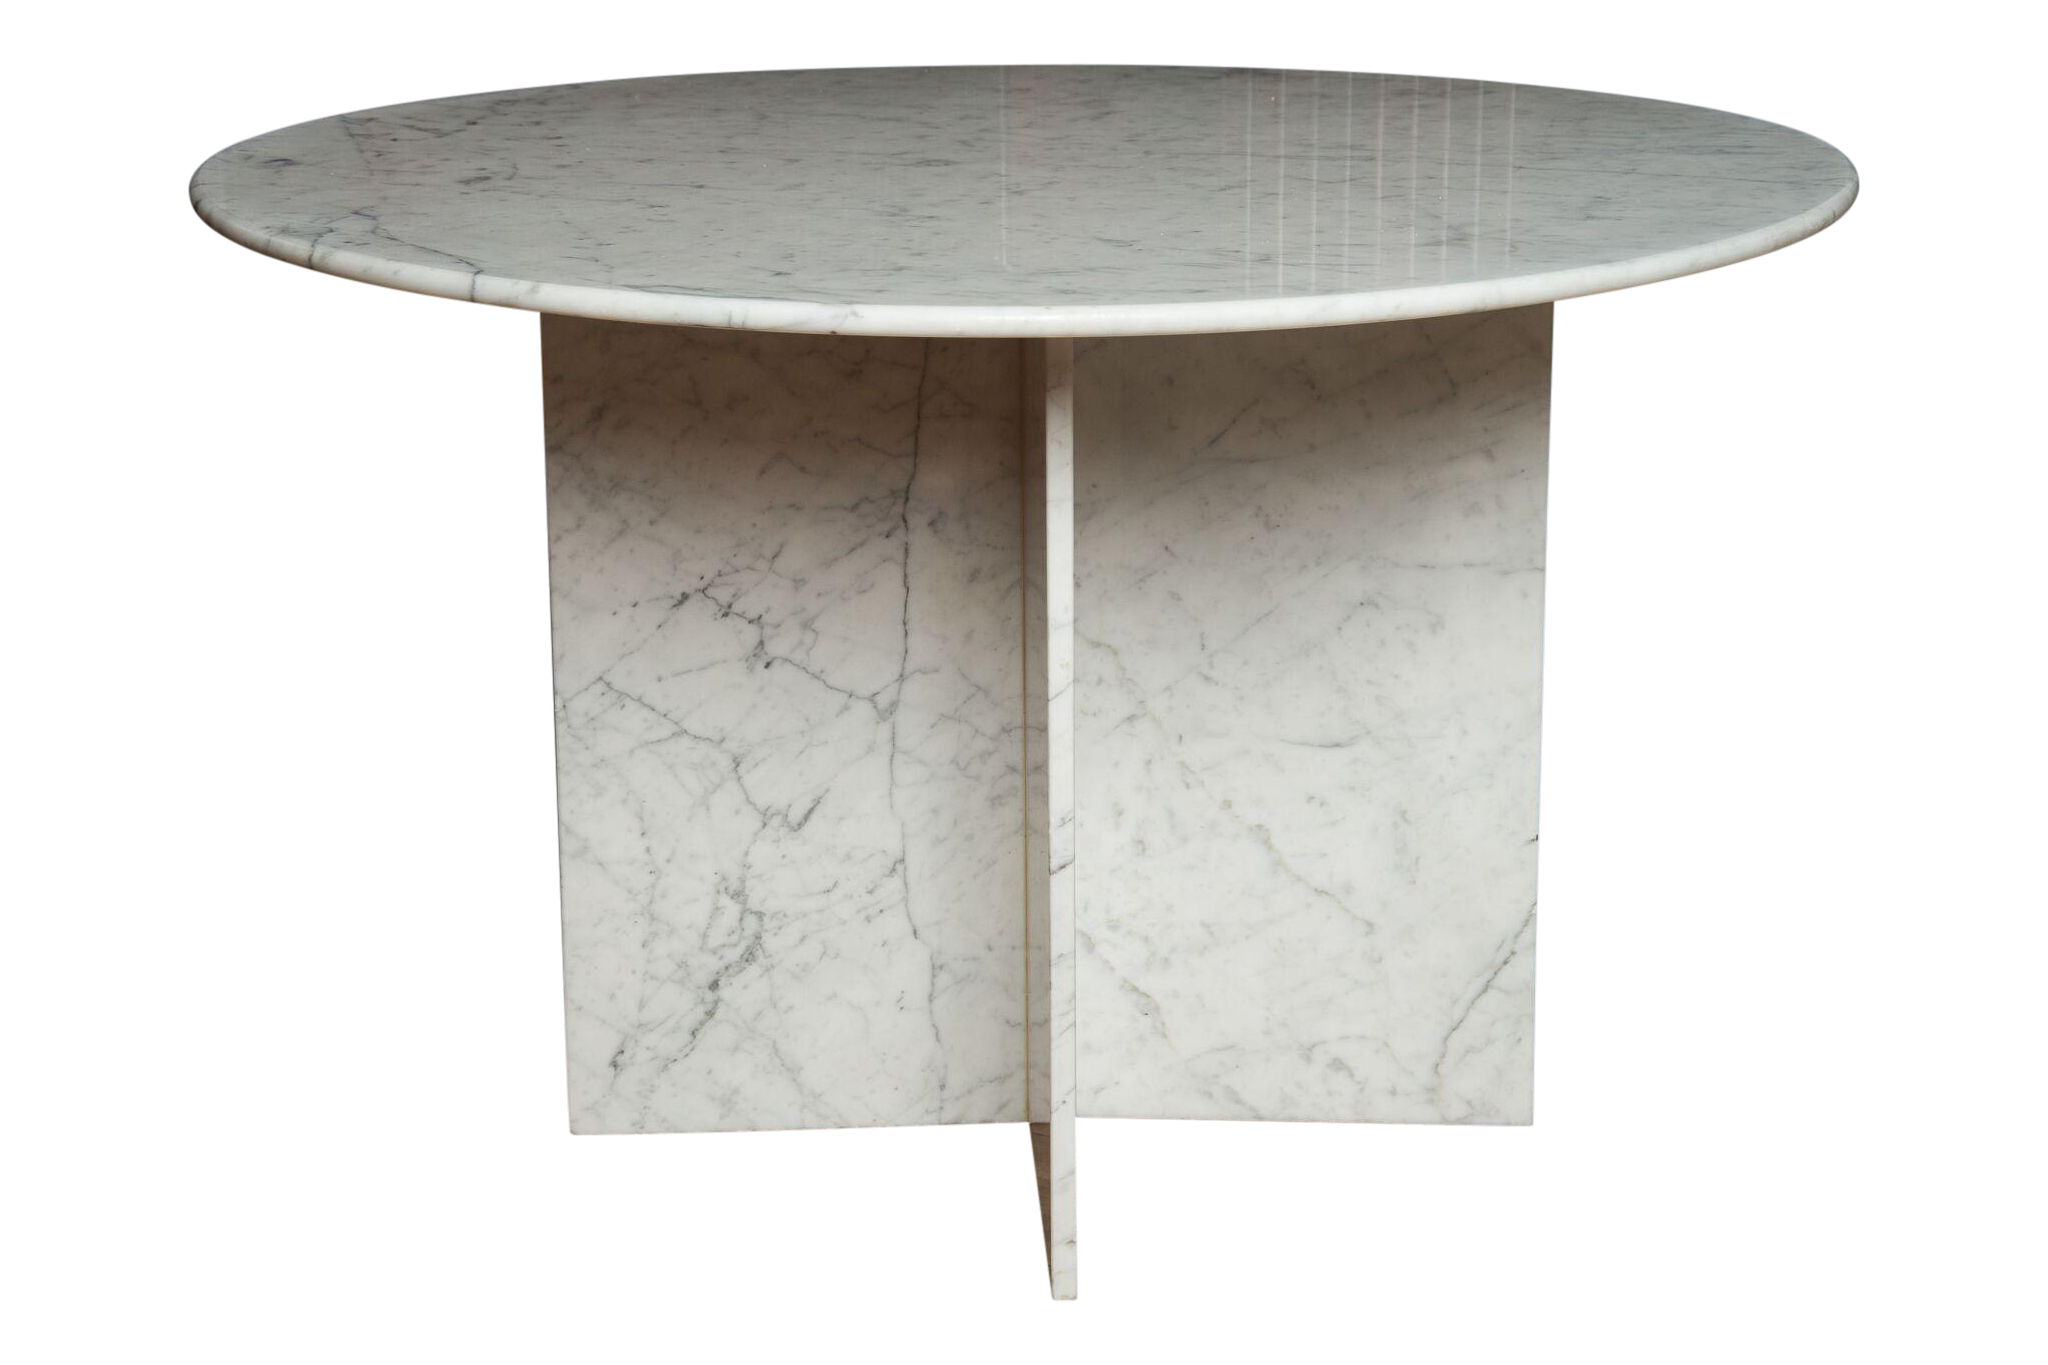 Round Carrara Marble Pedestal Dining Table Chairish : round carrara marble pedestal dining table 7447aspectfitampwidth640ampheight640 from www.chairish.com size 640 x 640 jpeg 23kB